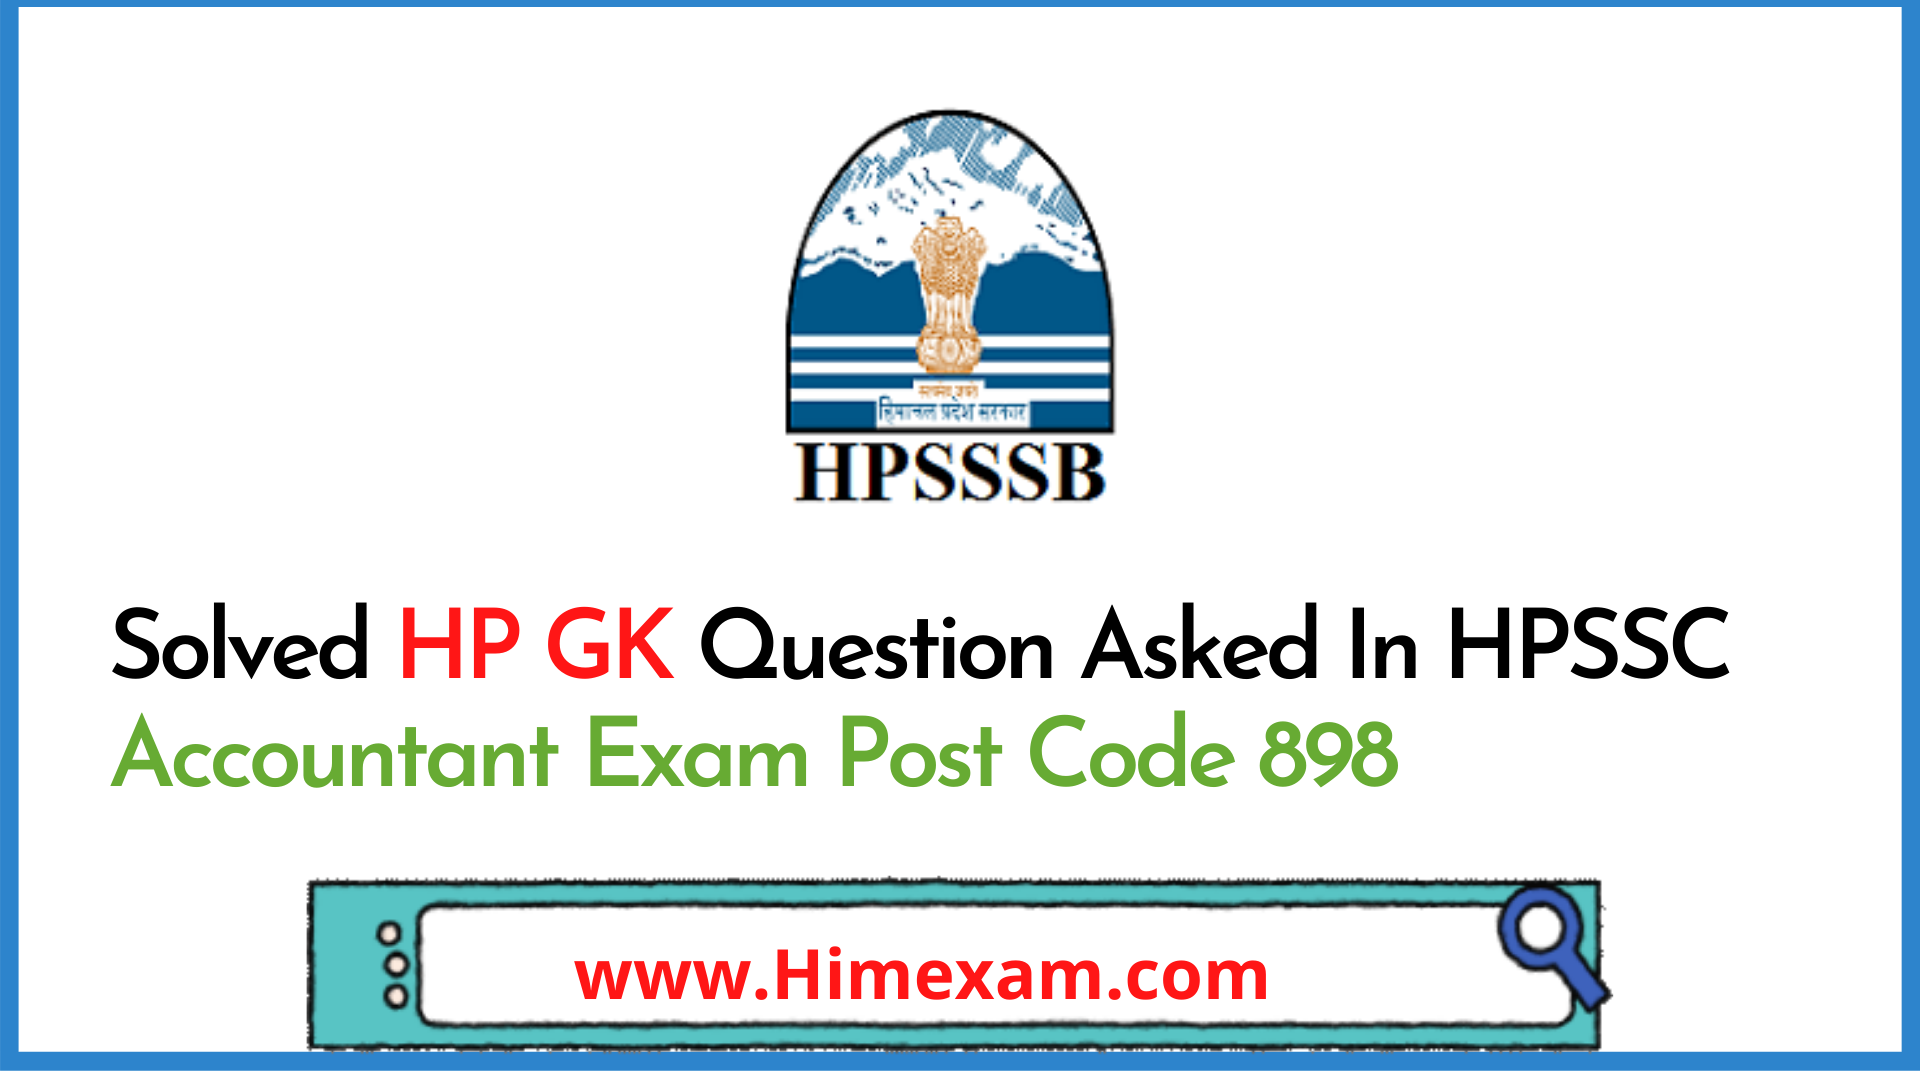 Solved HP GK Question Asked In HPSSC Accountant Exam Post Code 898